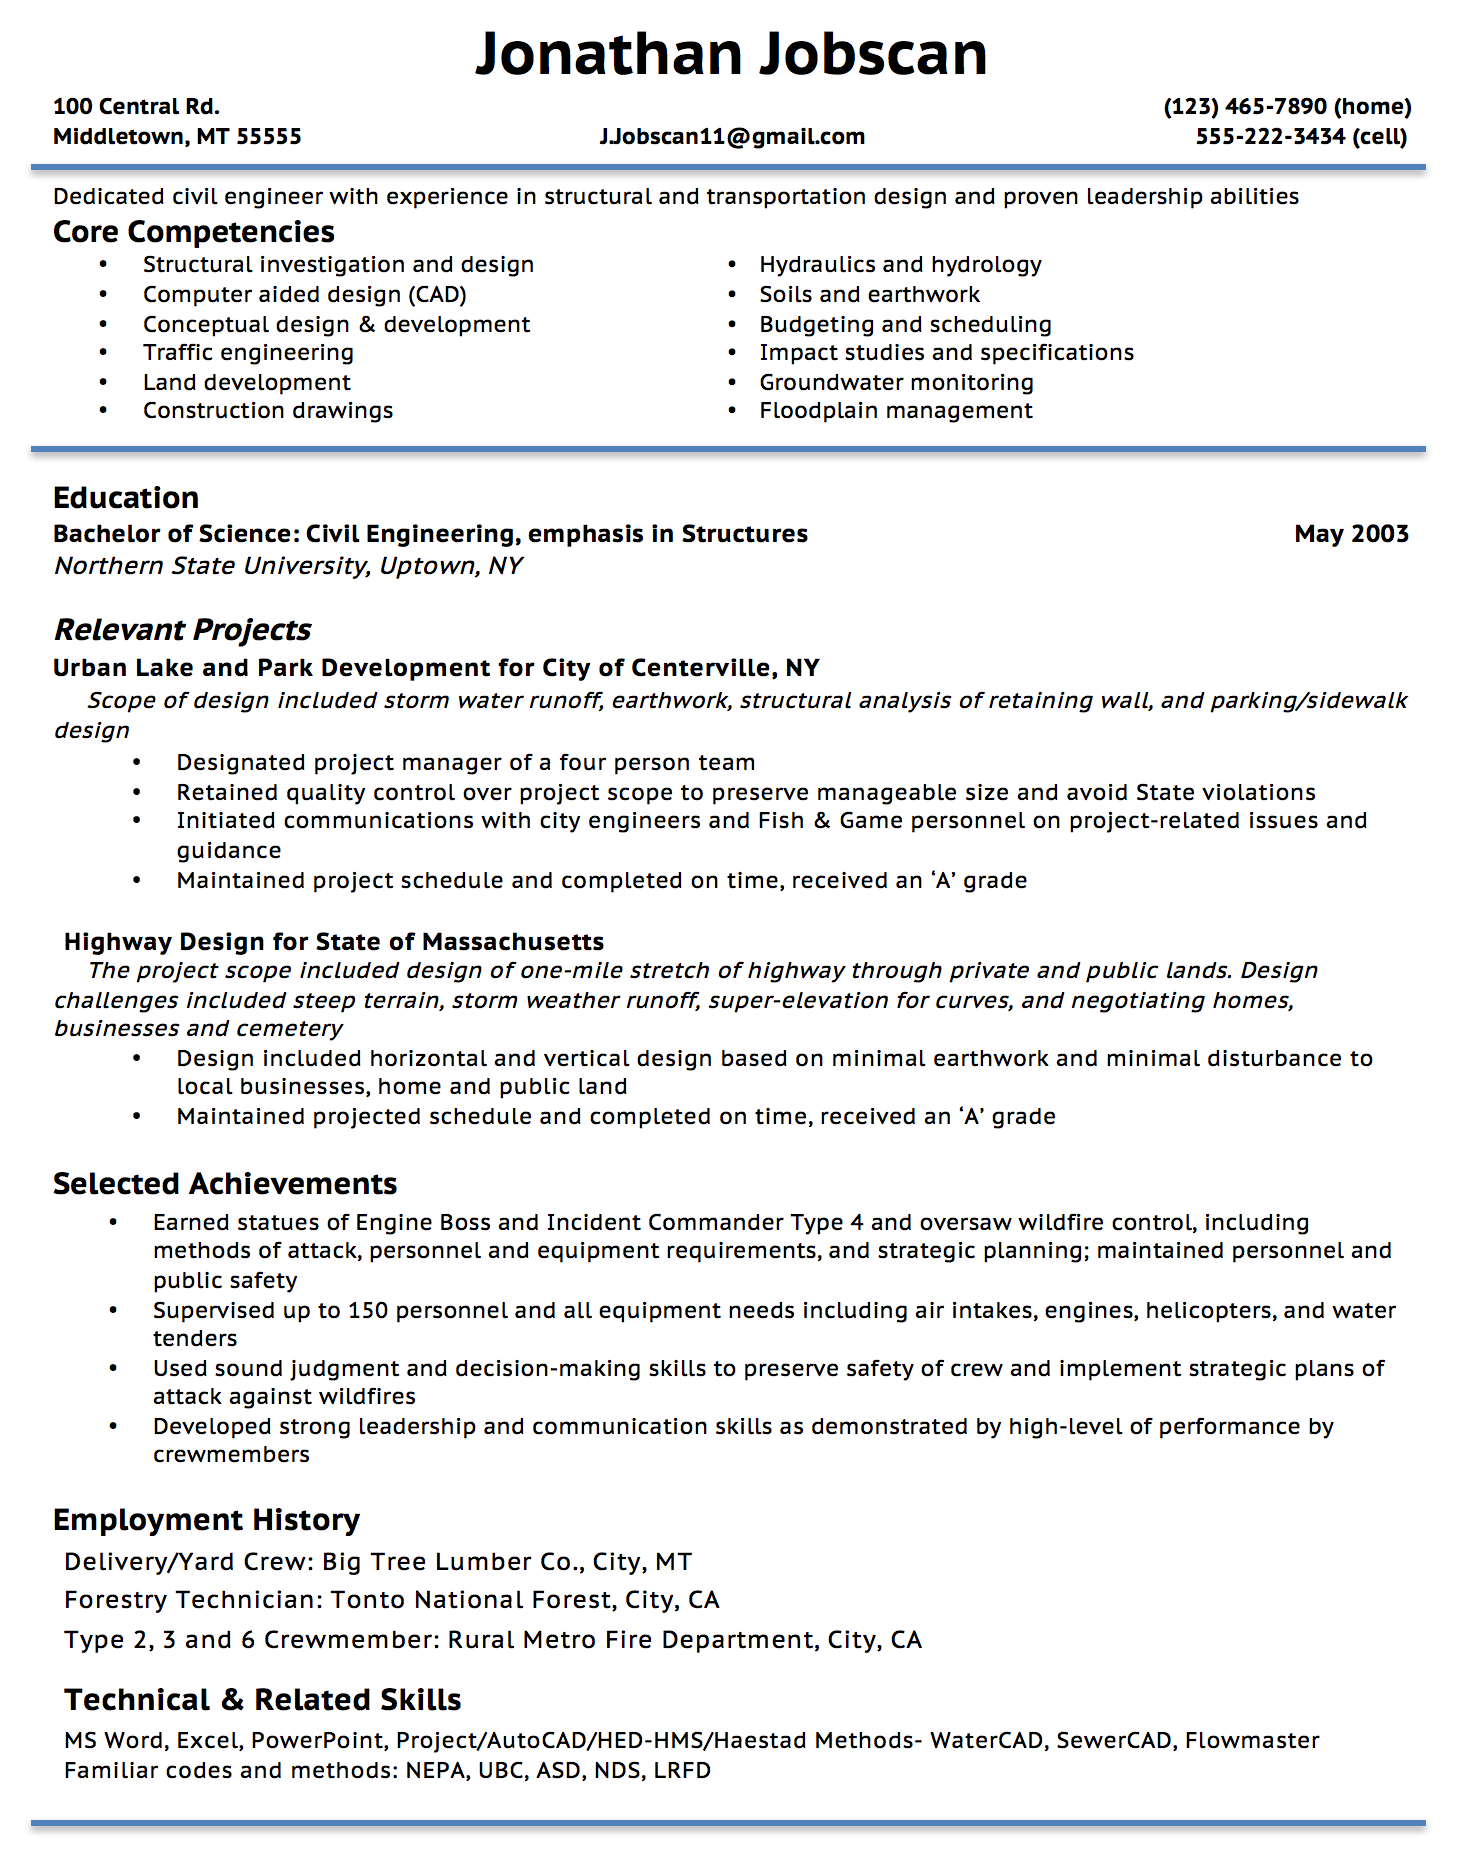 Opposenewapstandardsus  Unusual Resume Writing Guide  Jobscan With Fascinating Example Of A Functional Resume Format With Agreeable Skills For Resume List Also Resume Gpa In Addition Resume Templates Word  And How To Create A Cover Letter For A Resume As Well As Resume Templates For Teens Additionally Job Resume Objective From Jobscanco With Opposenewapstandardsus  Fascinating Resume Writing Guide  Jobscan With Agreeable Example Of A Functional Resume Format And Unusual Skills For Resume List Also Resume Gpa In Addition Resume Templates Word  From Jobscanco